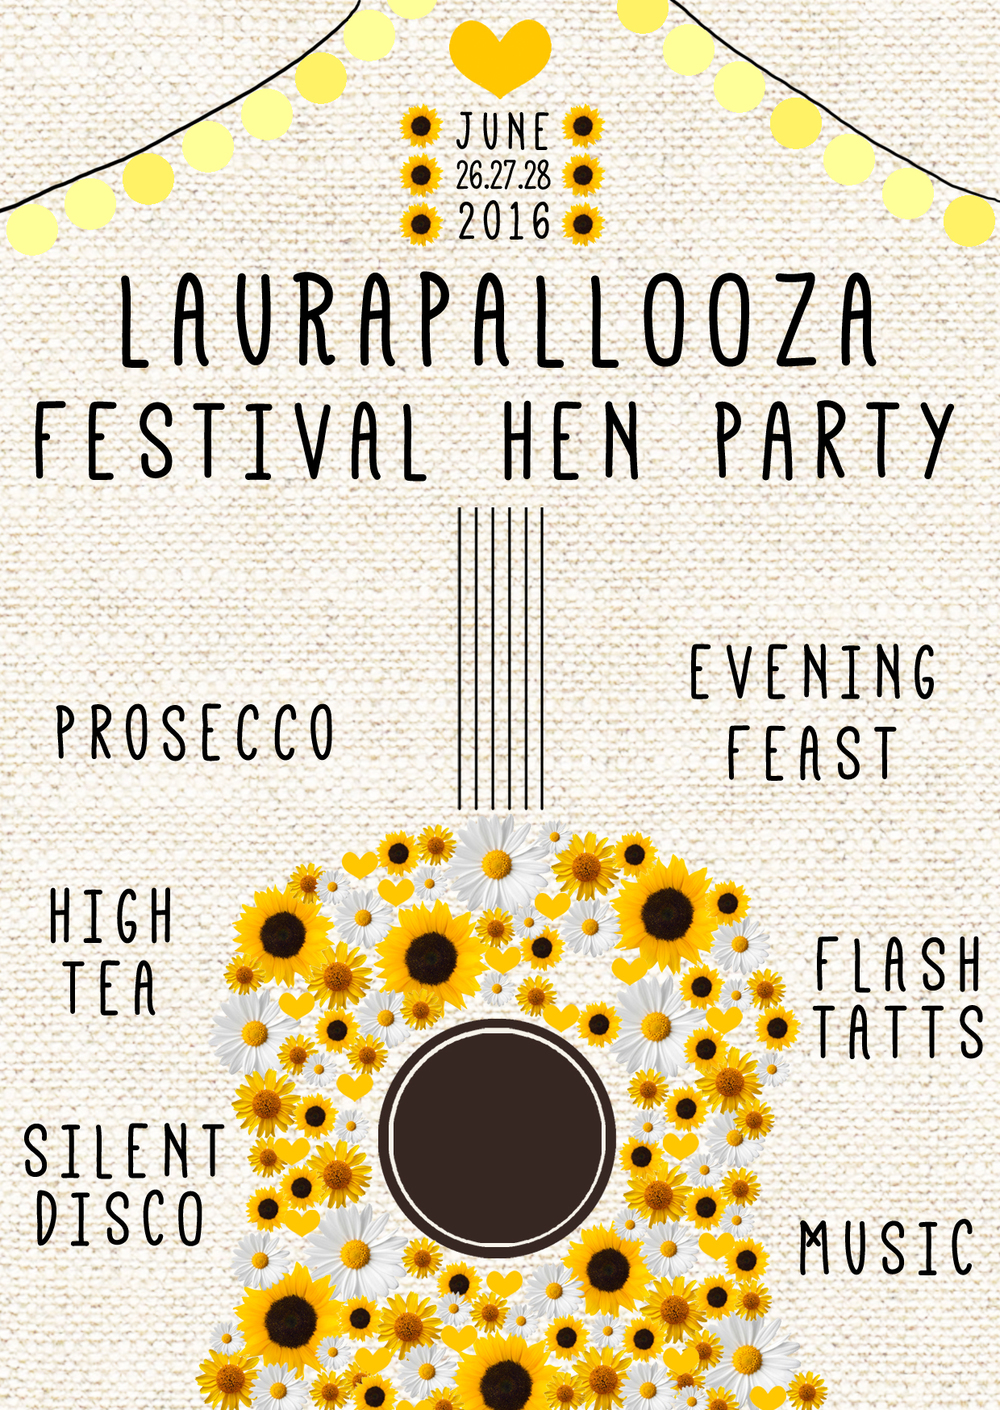 www.totallypinnable.com digital hen party invitation. Festival themed, guitar, flowers, yellow, festoons. A6 in size